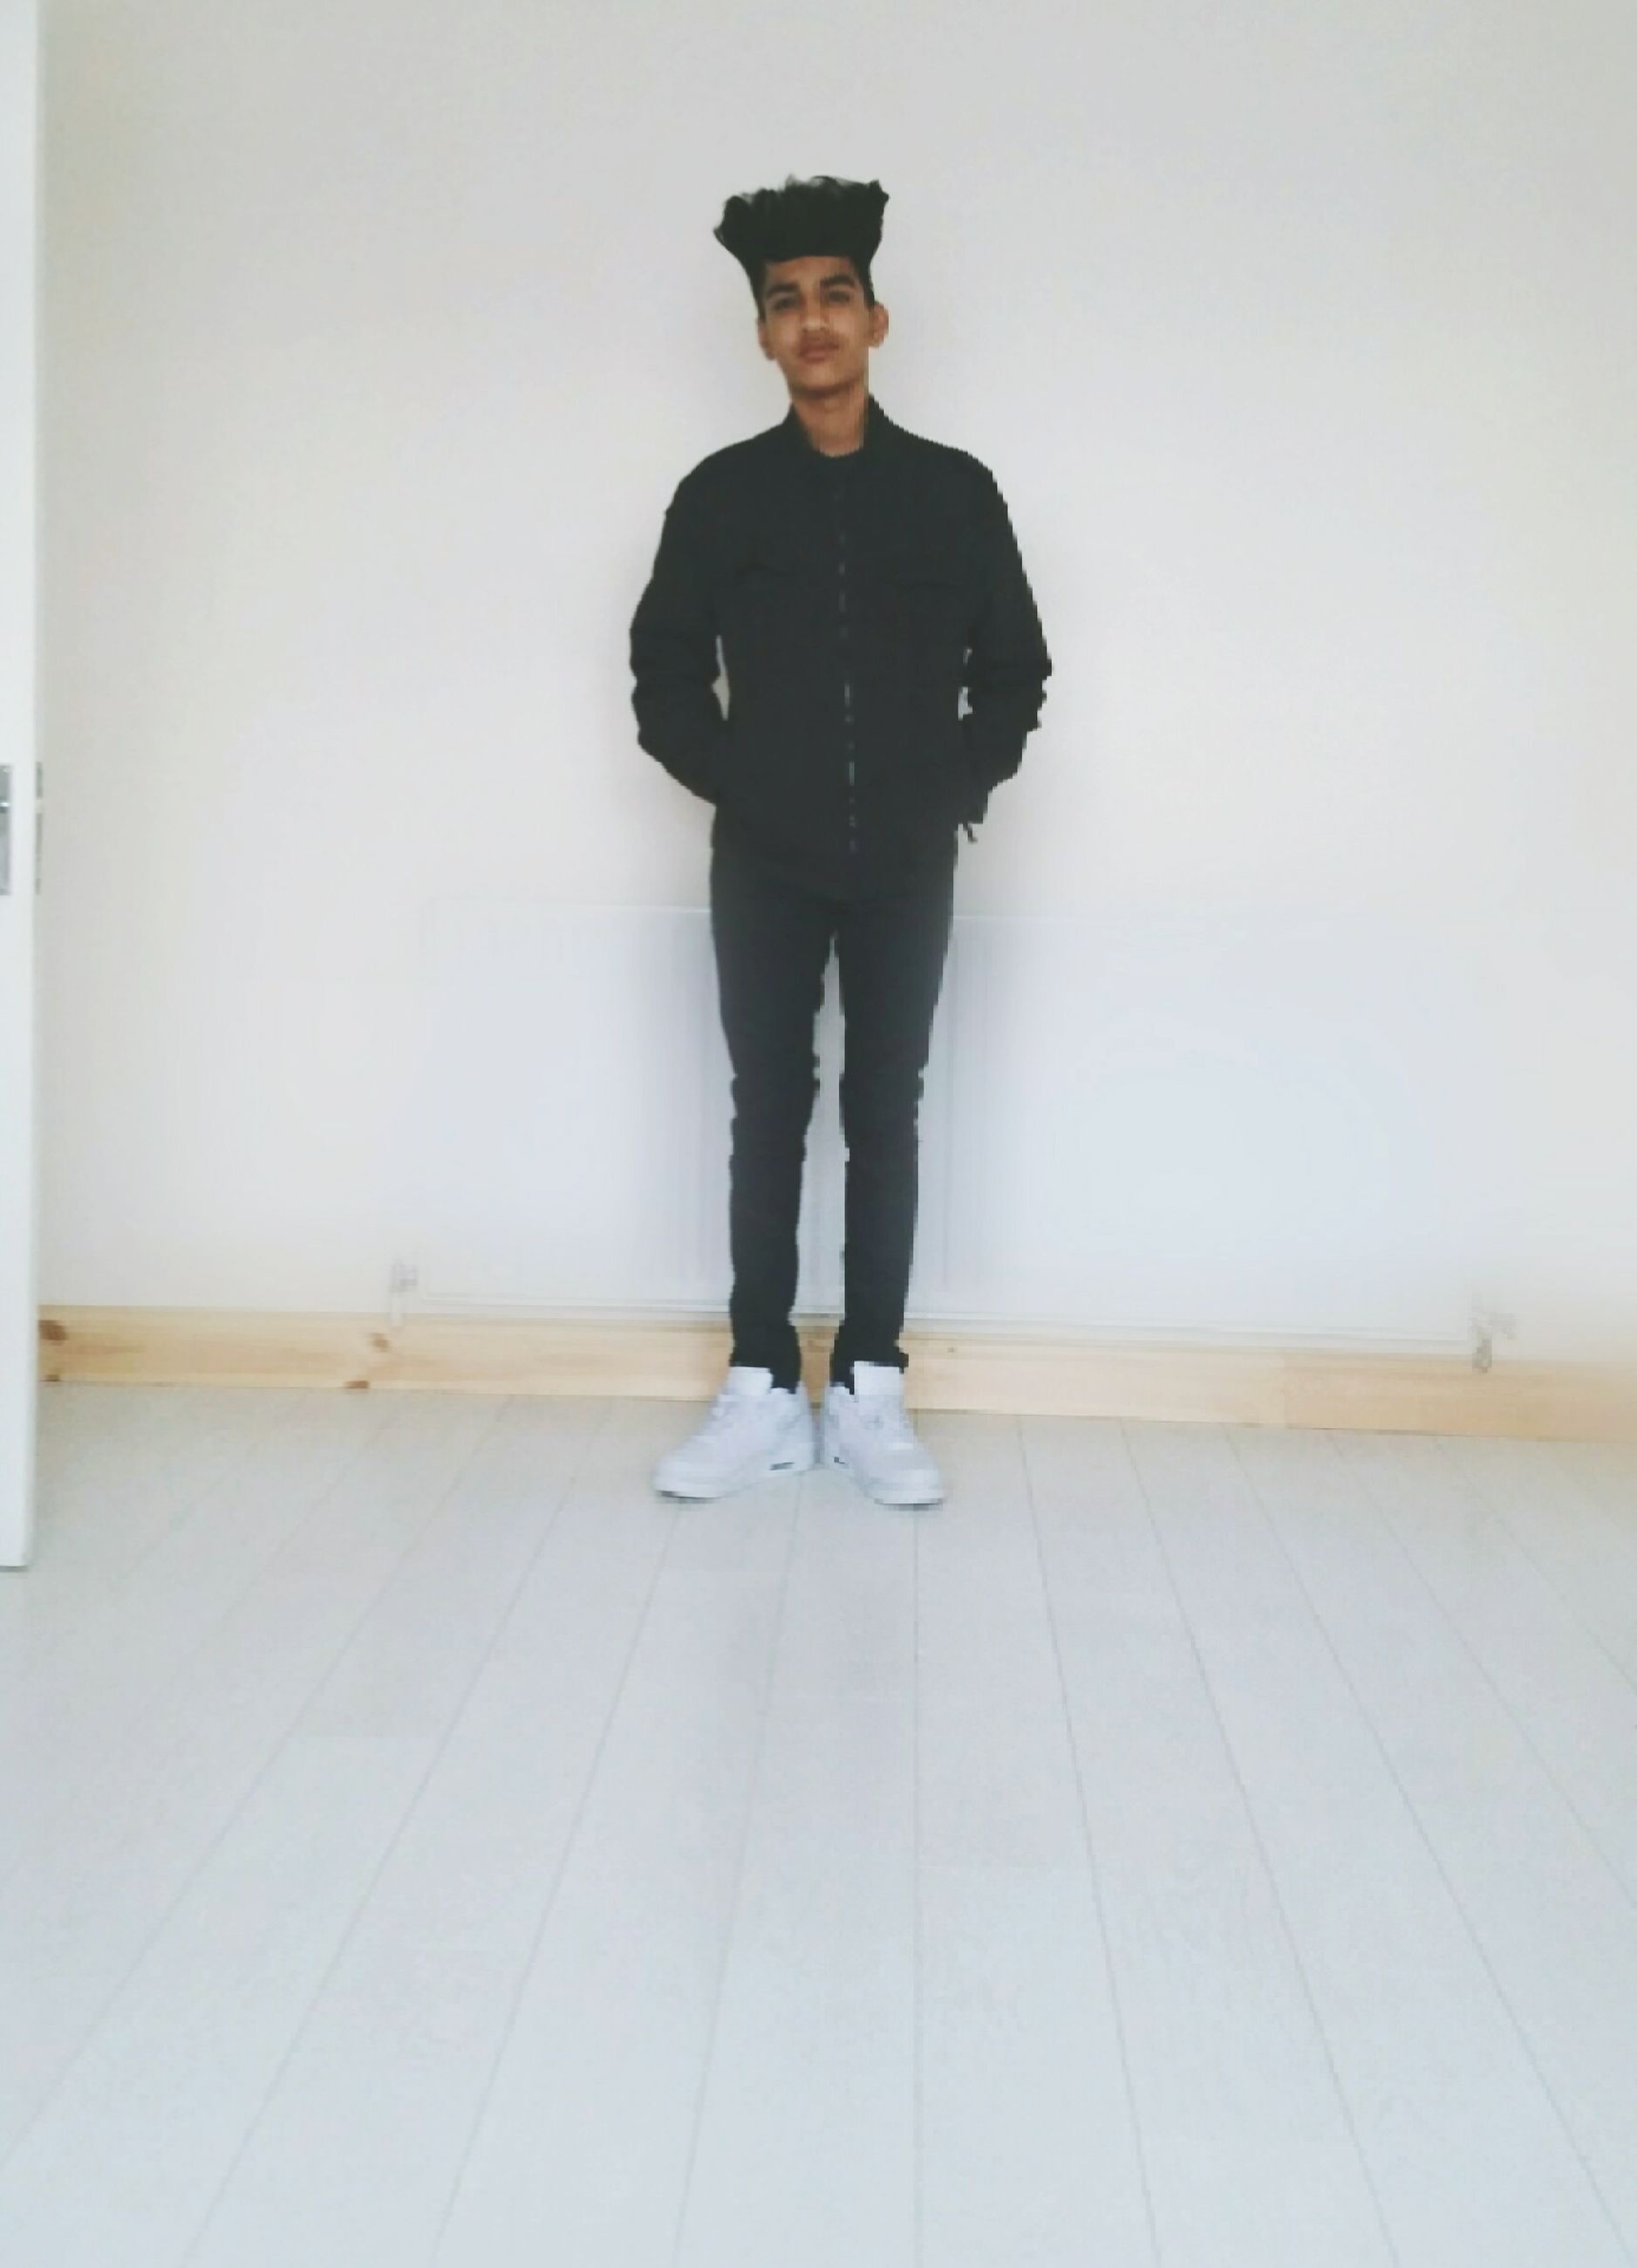 young adult, standing, indoors, lifestyles, casual clothing, front view, full length, wall - building feature, young men, leisure activity, looking at camera, portrait, person, three quarter length, copy space, wall, home interior